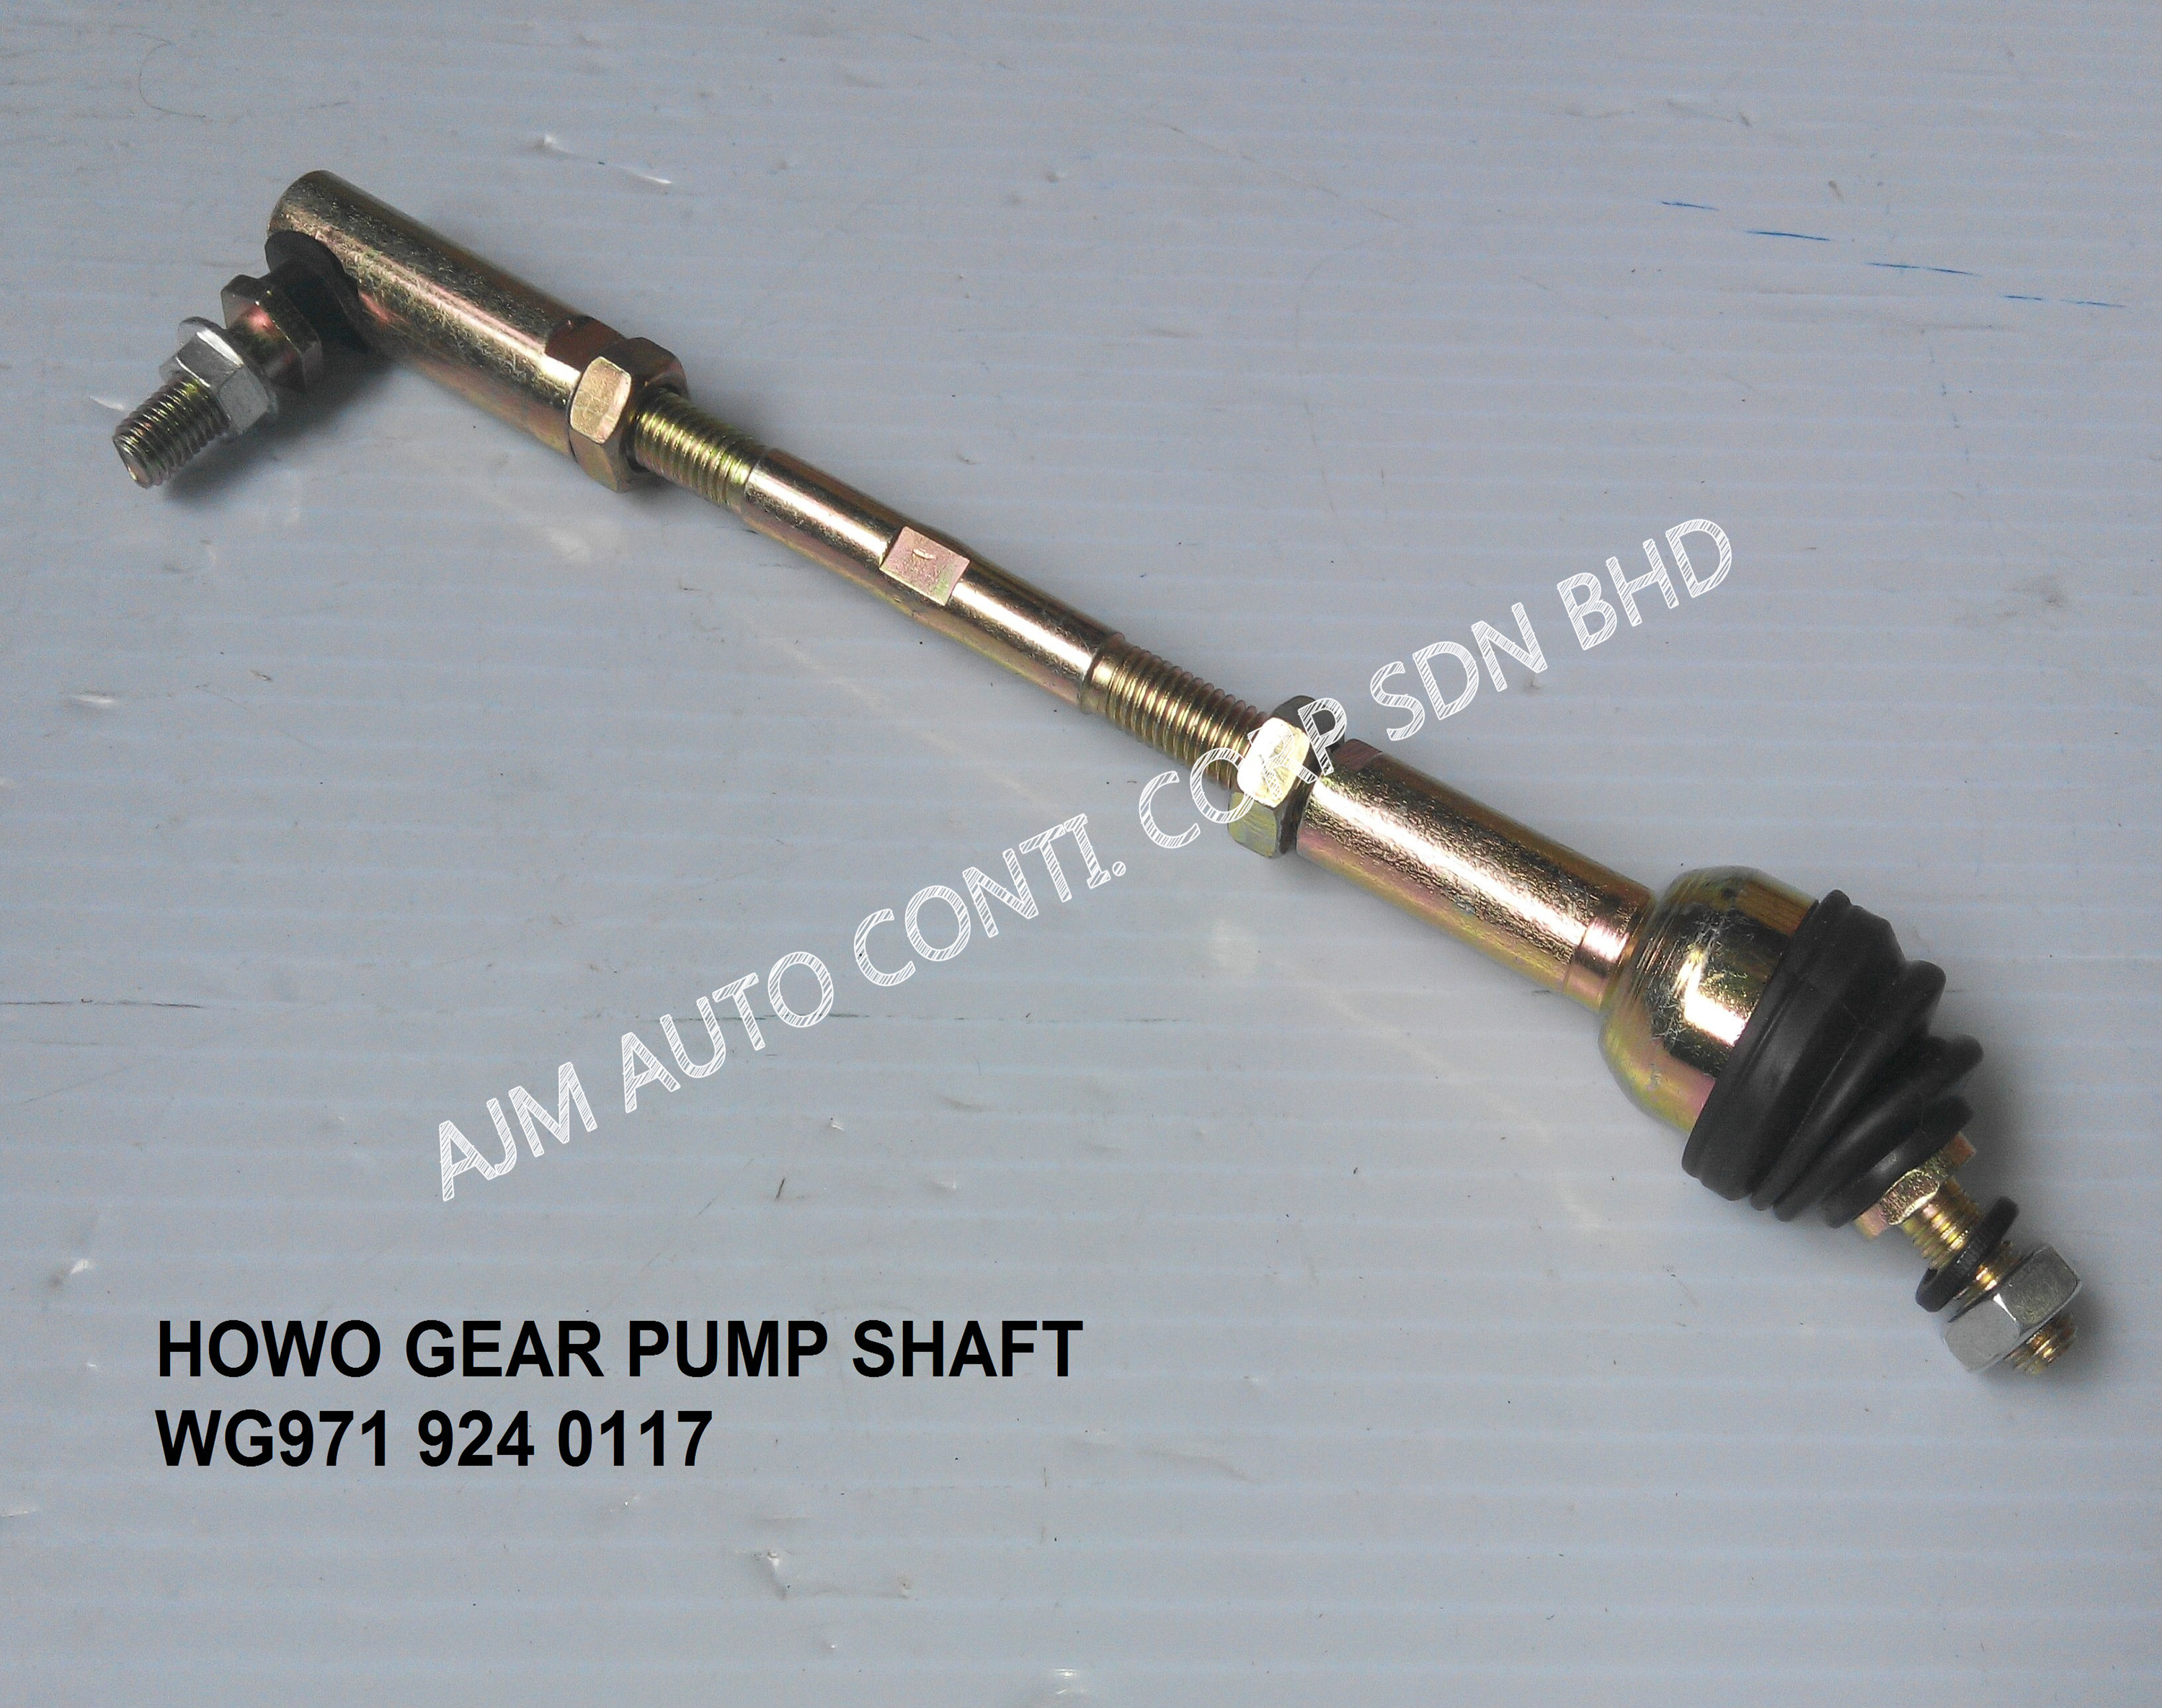 SINOTRUCK_HOWO_GEAR_PUMP_SHAFT-WG9719240117